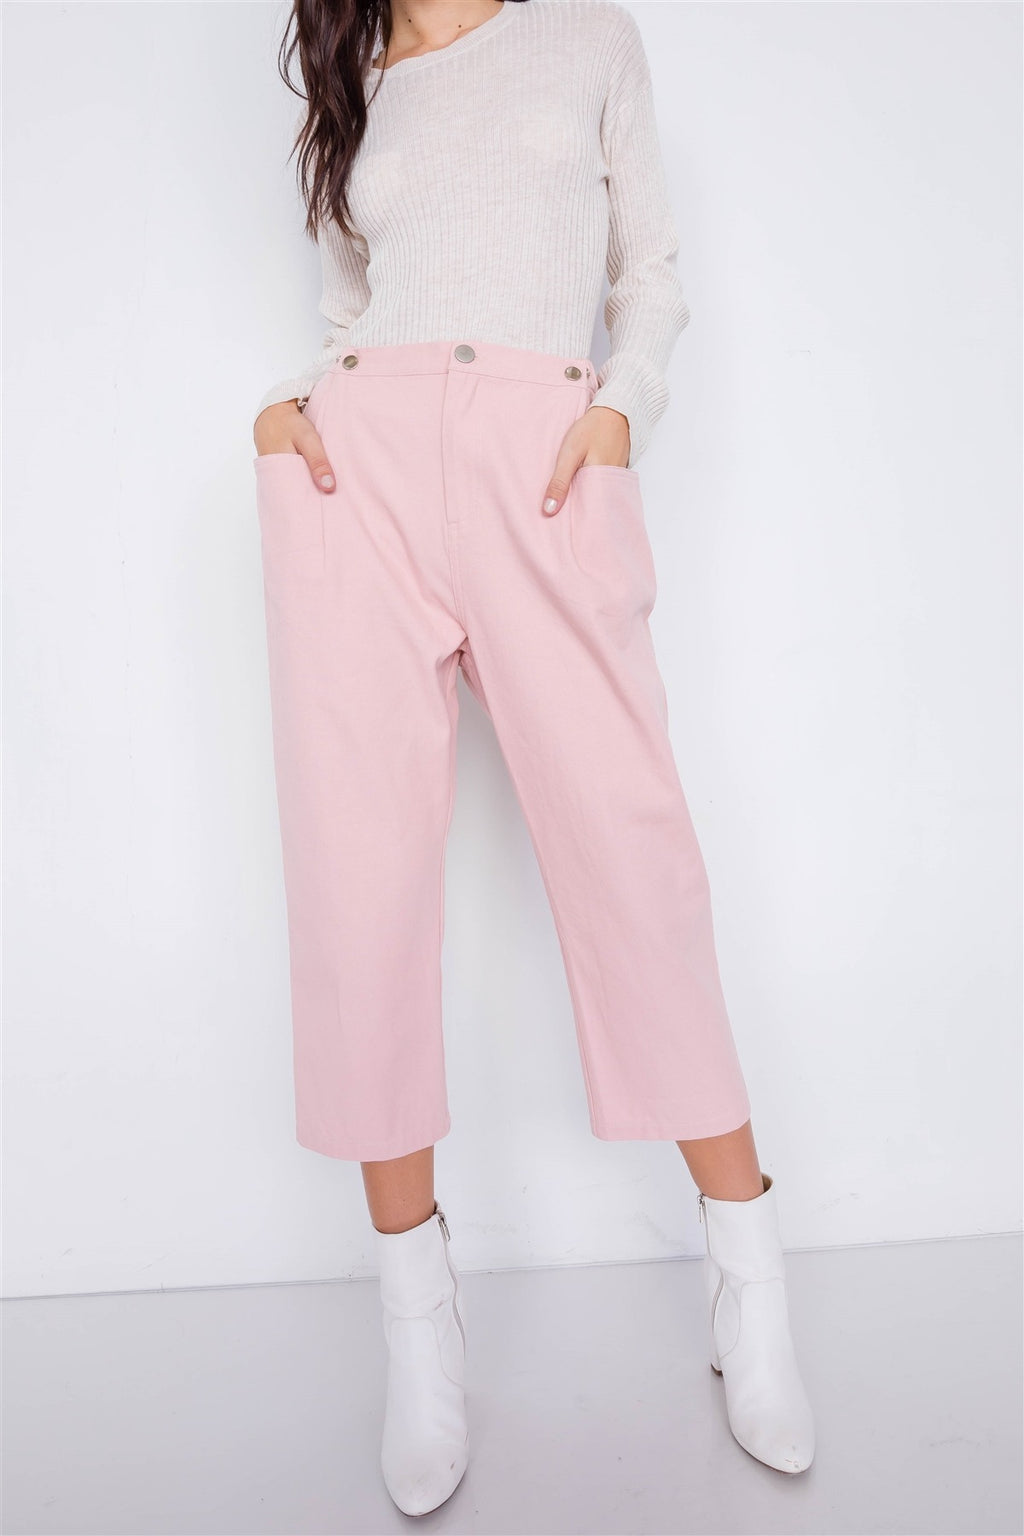 Adjustable Wide Leg Pants